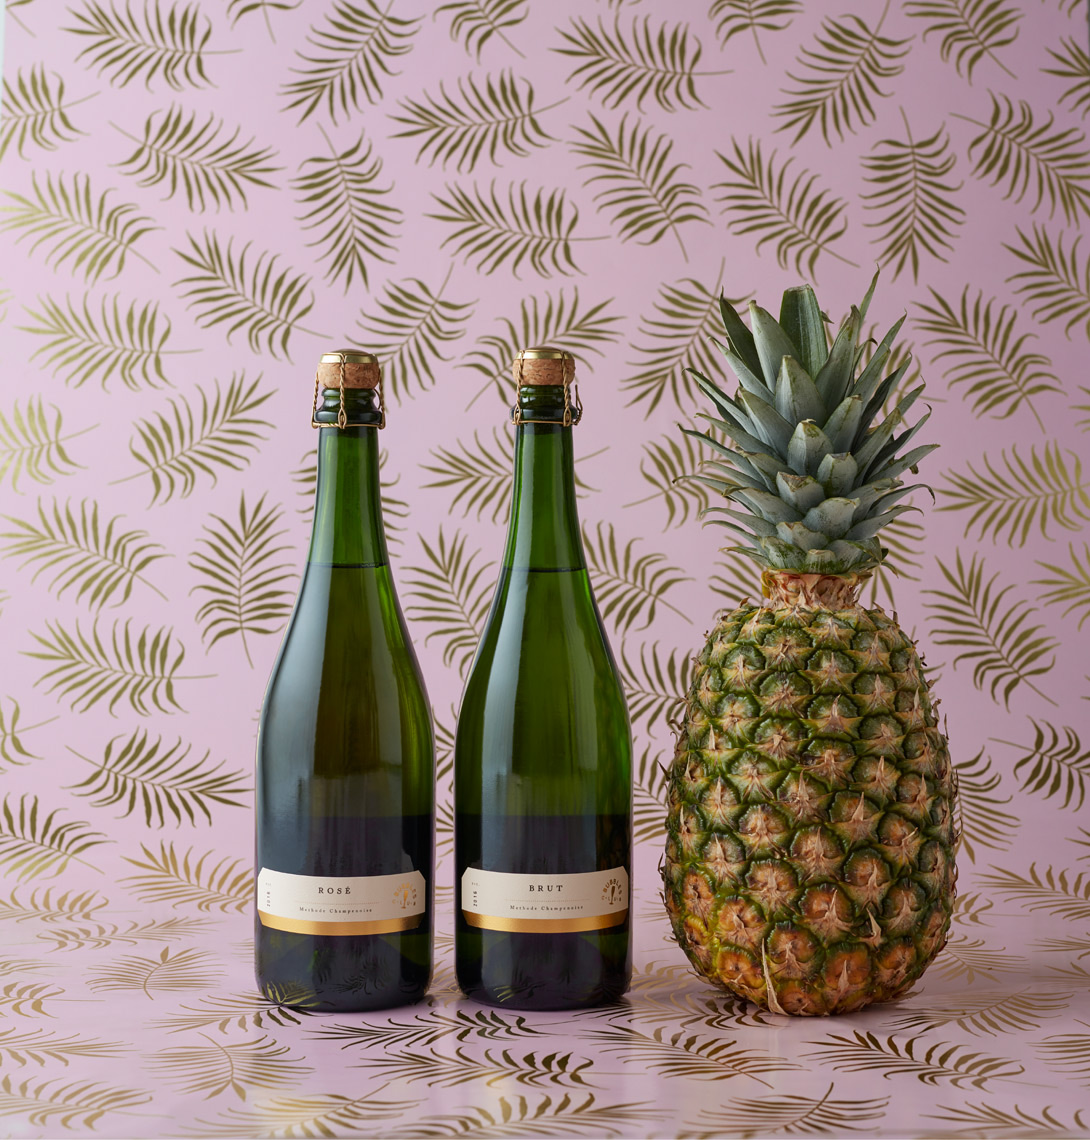 2 bottles of champagne next to pineapple with pink and gold pattern background